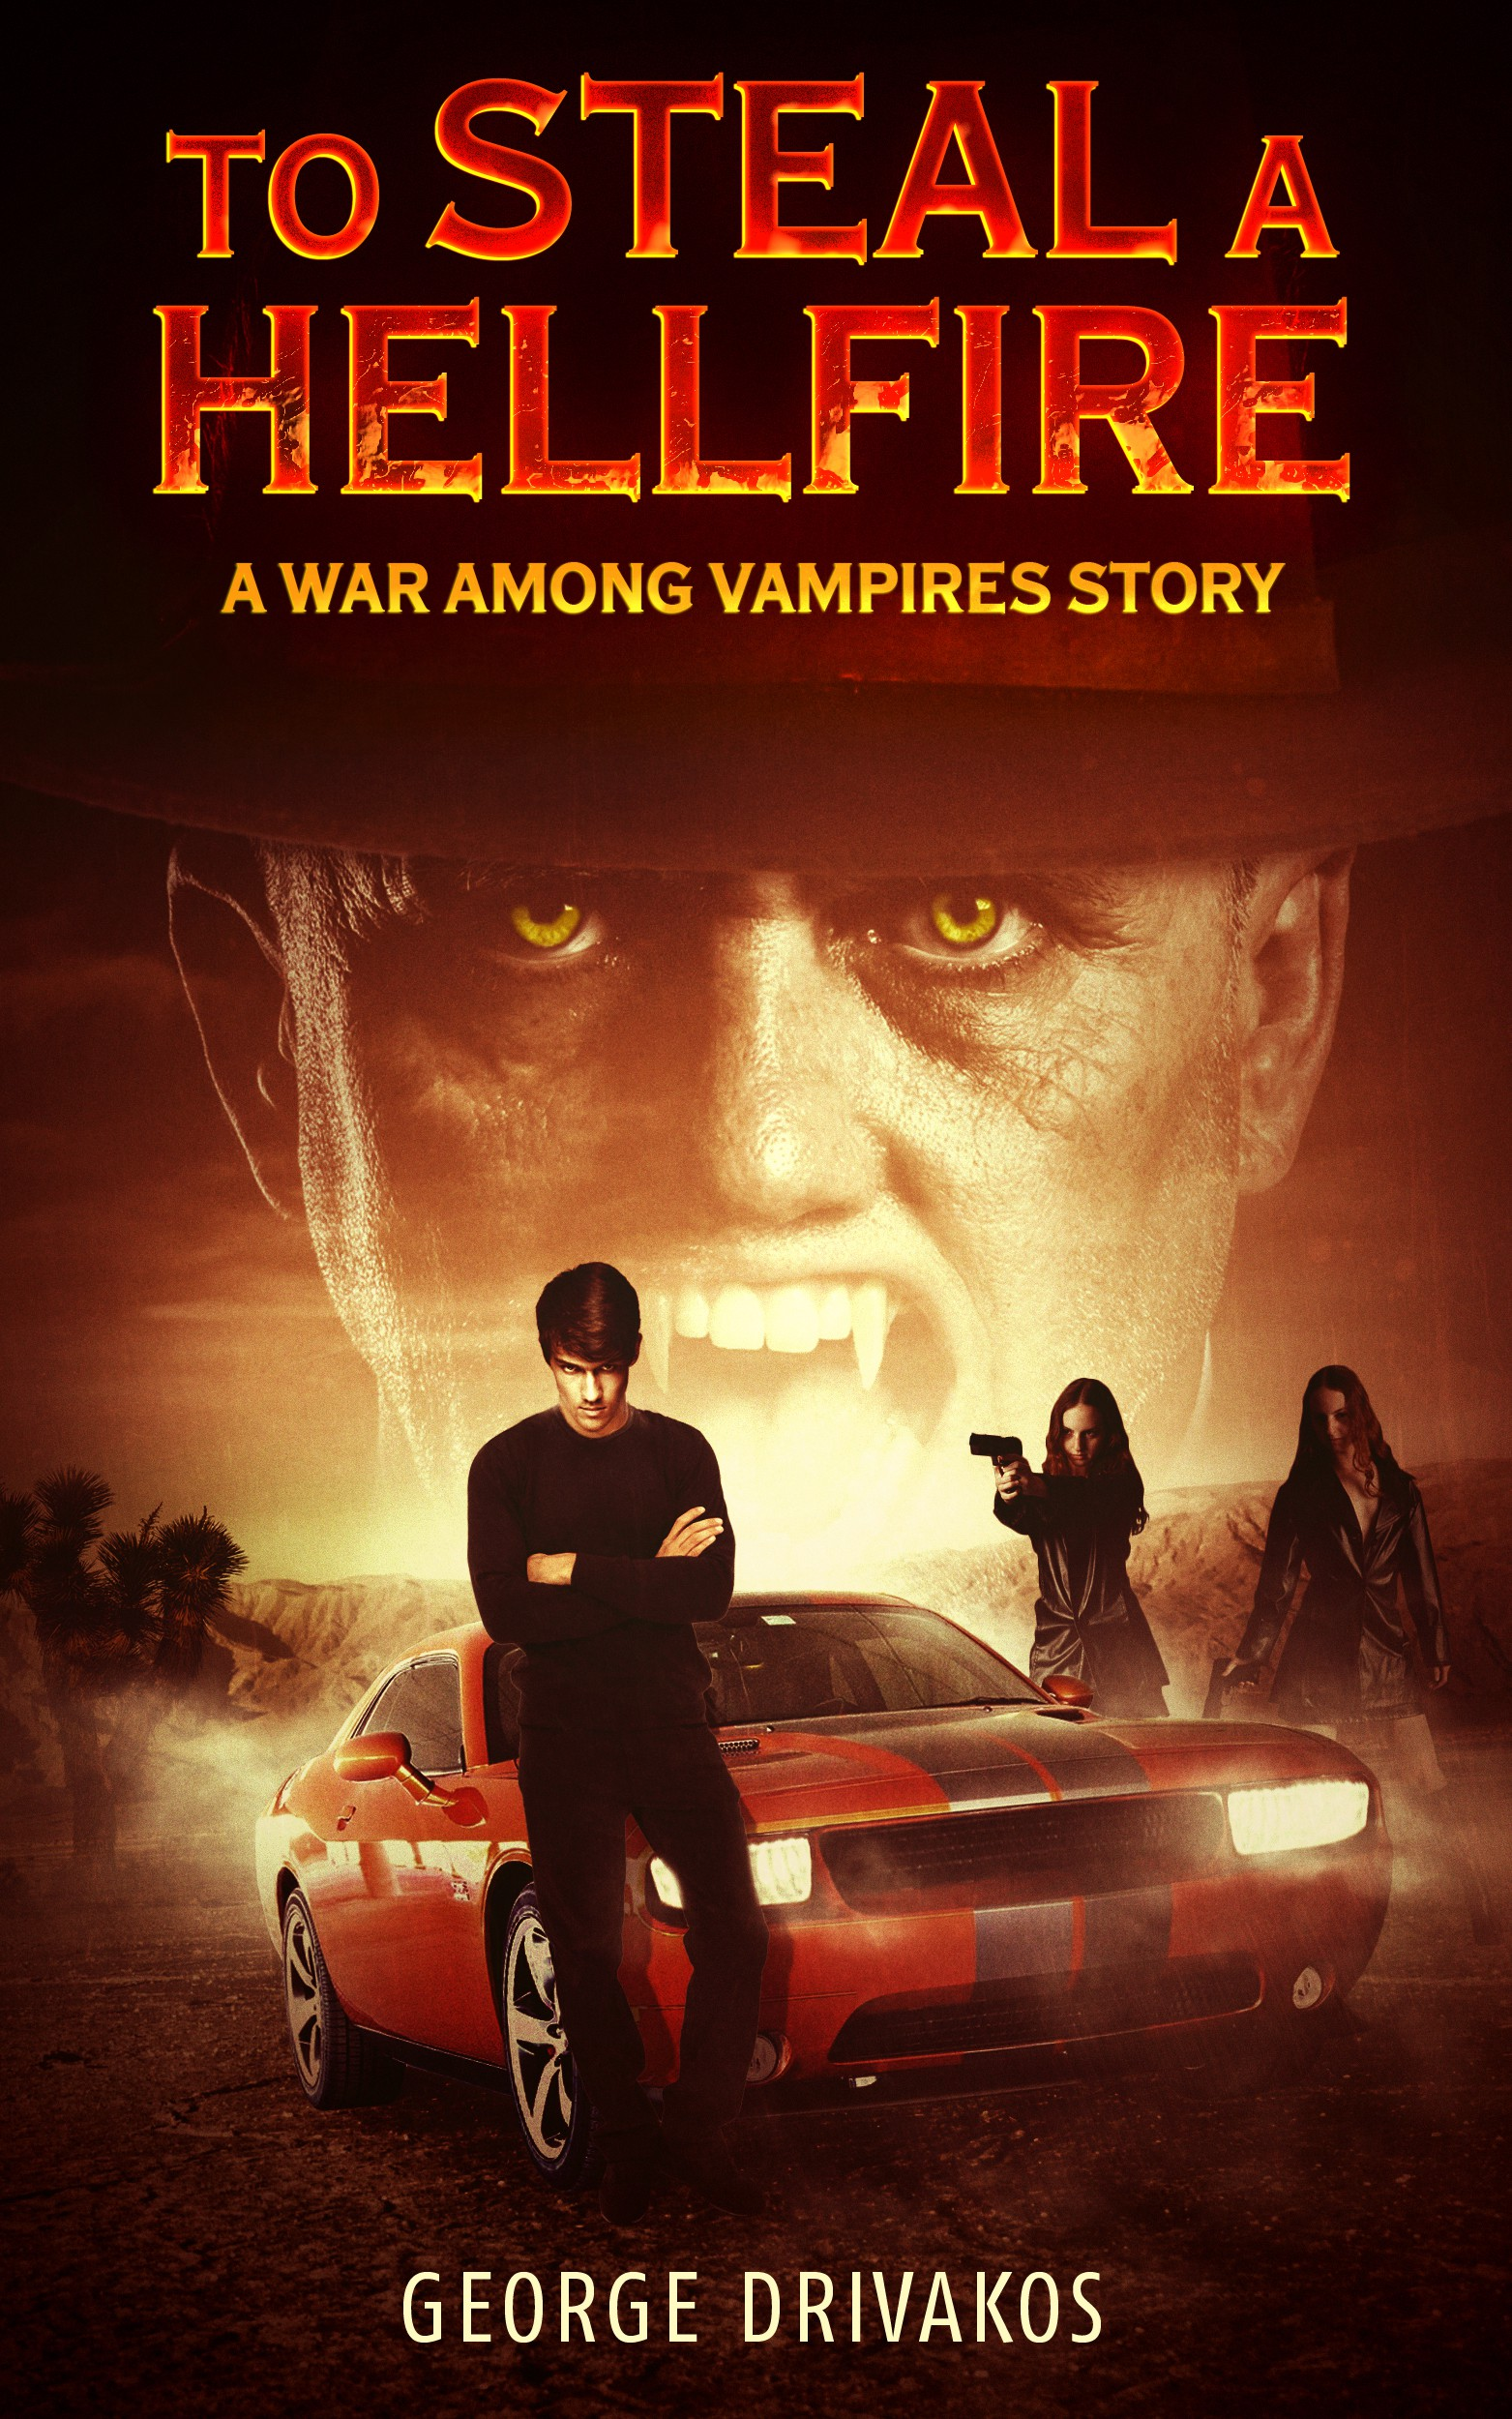 Create a book cover for my Vampire story to be published on Amazon Kindle